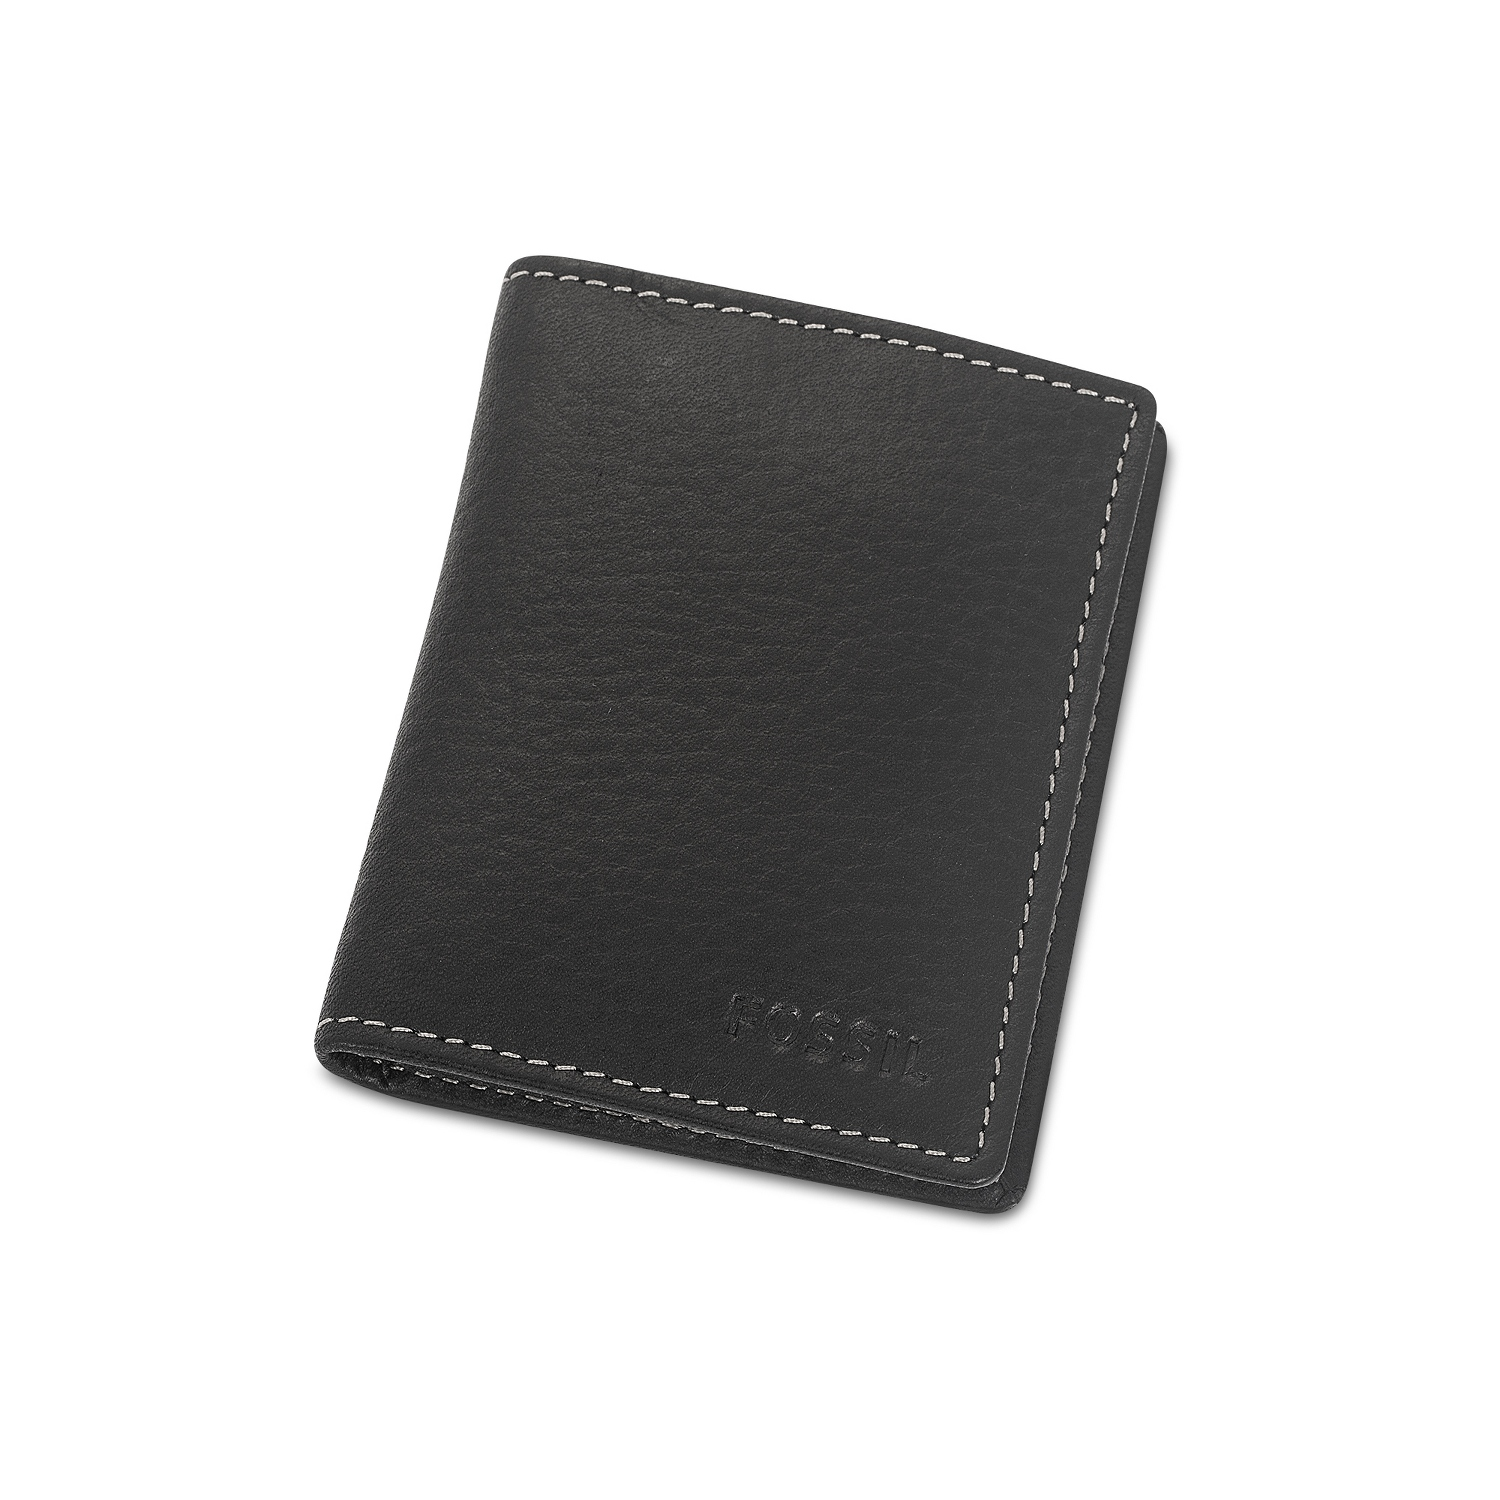 720c51efca6c5a Fossil Lincoln Black Leather Card Case Wallet